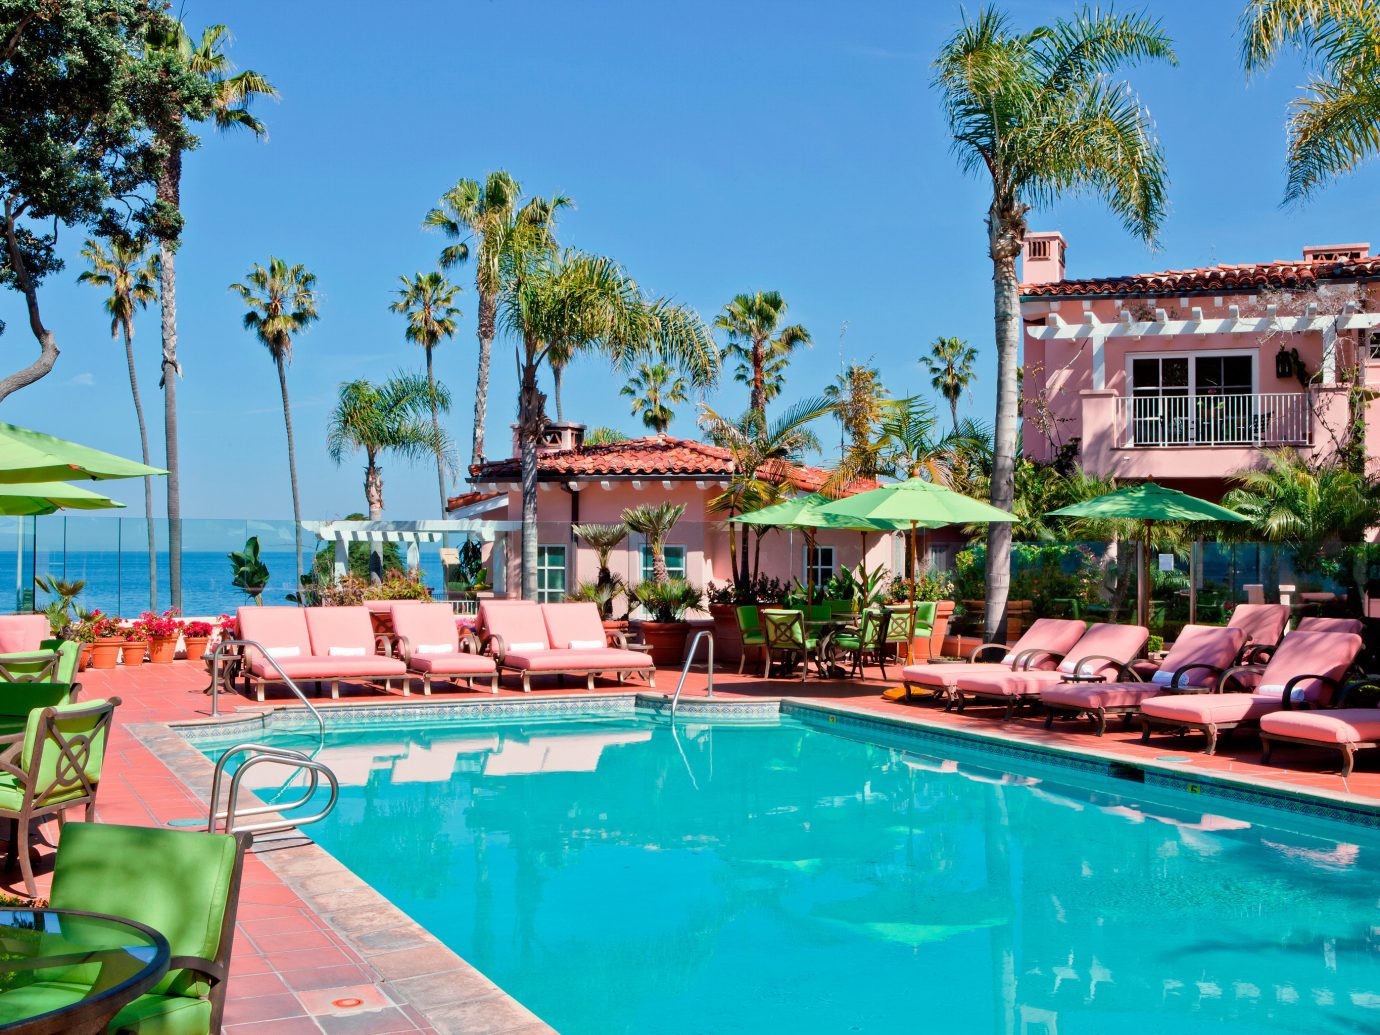 Elegant Hotels Luxury Patio Pool Trip Ideas Tropical tree sky outdoor swimming pool leisure Resort property estate vacation resort town Villa real estate palace amusement park swimming several